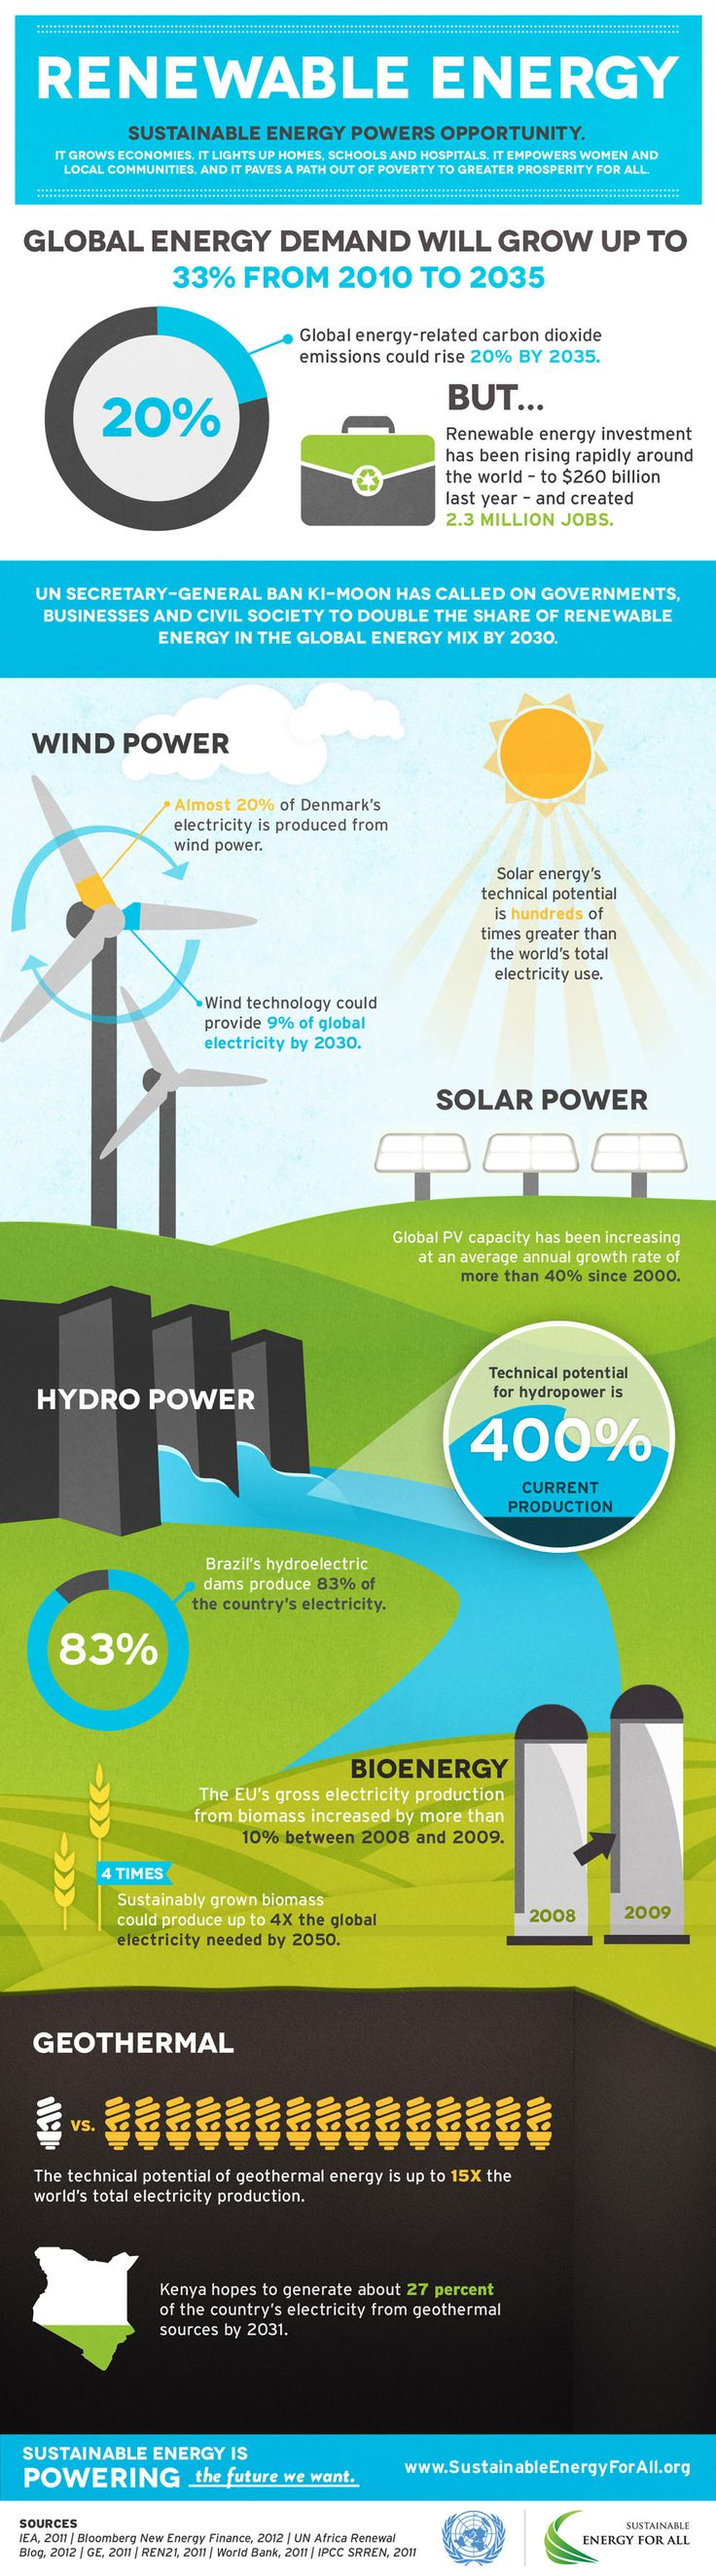 best renewable energy ideas sustainable energy sustainable energy for all renewable energy infographic